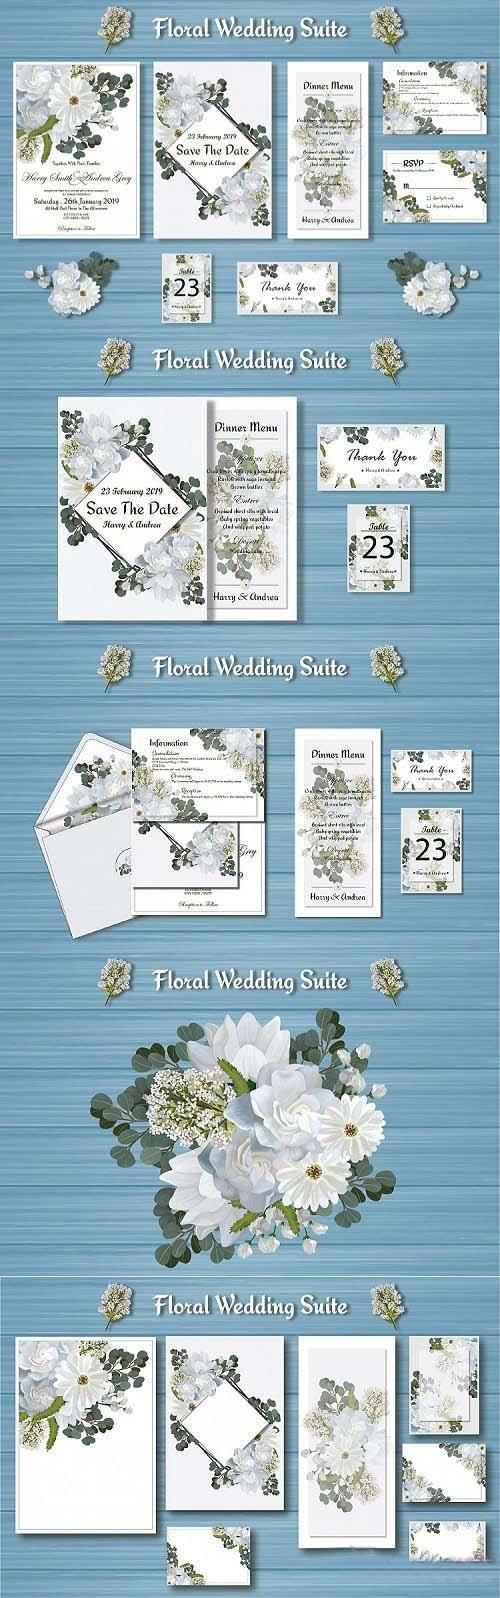 White Floral Wedding Invitation Suite - 185060